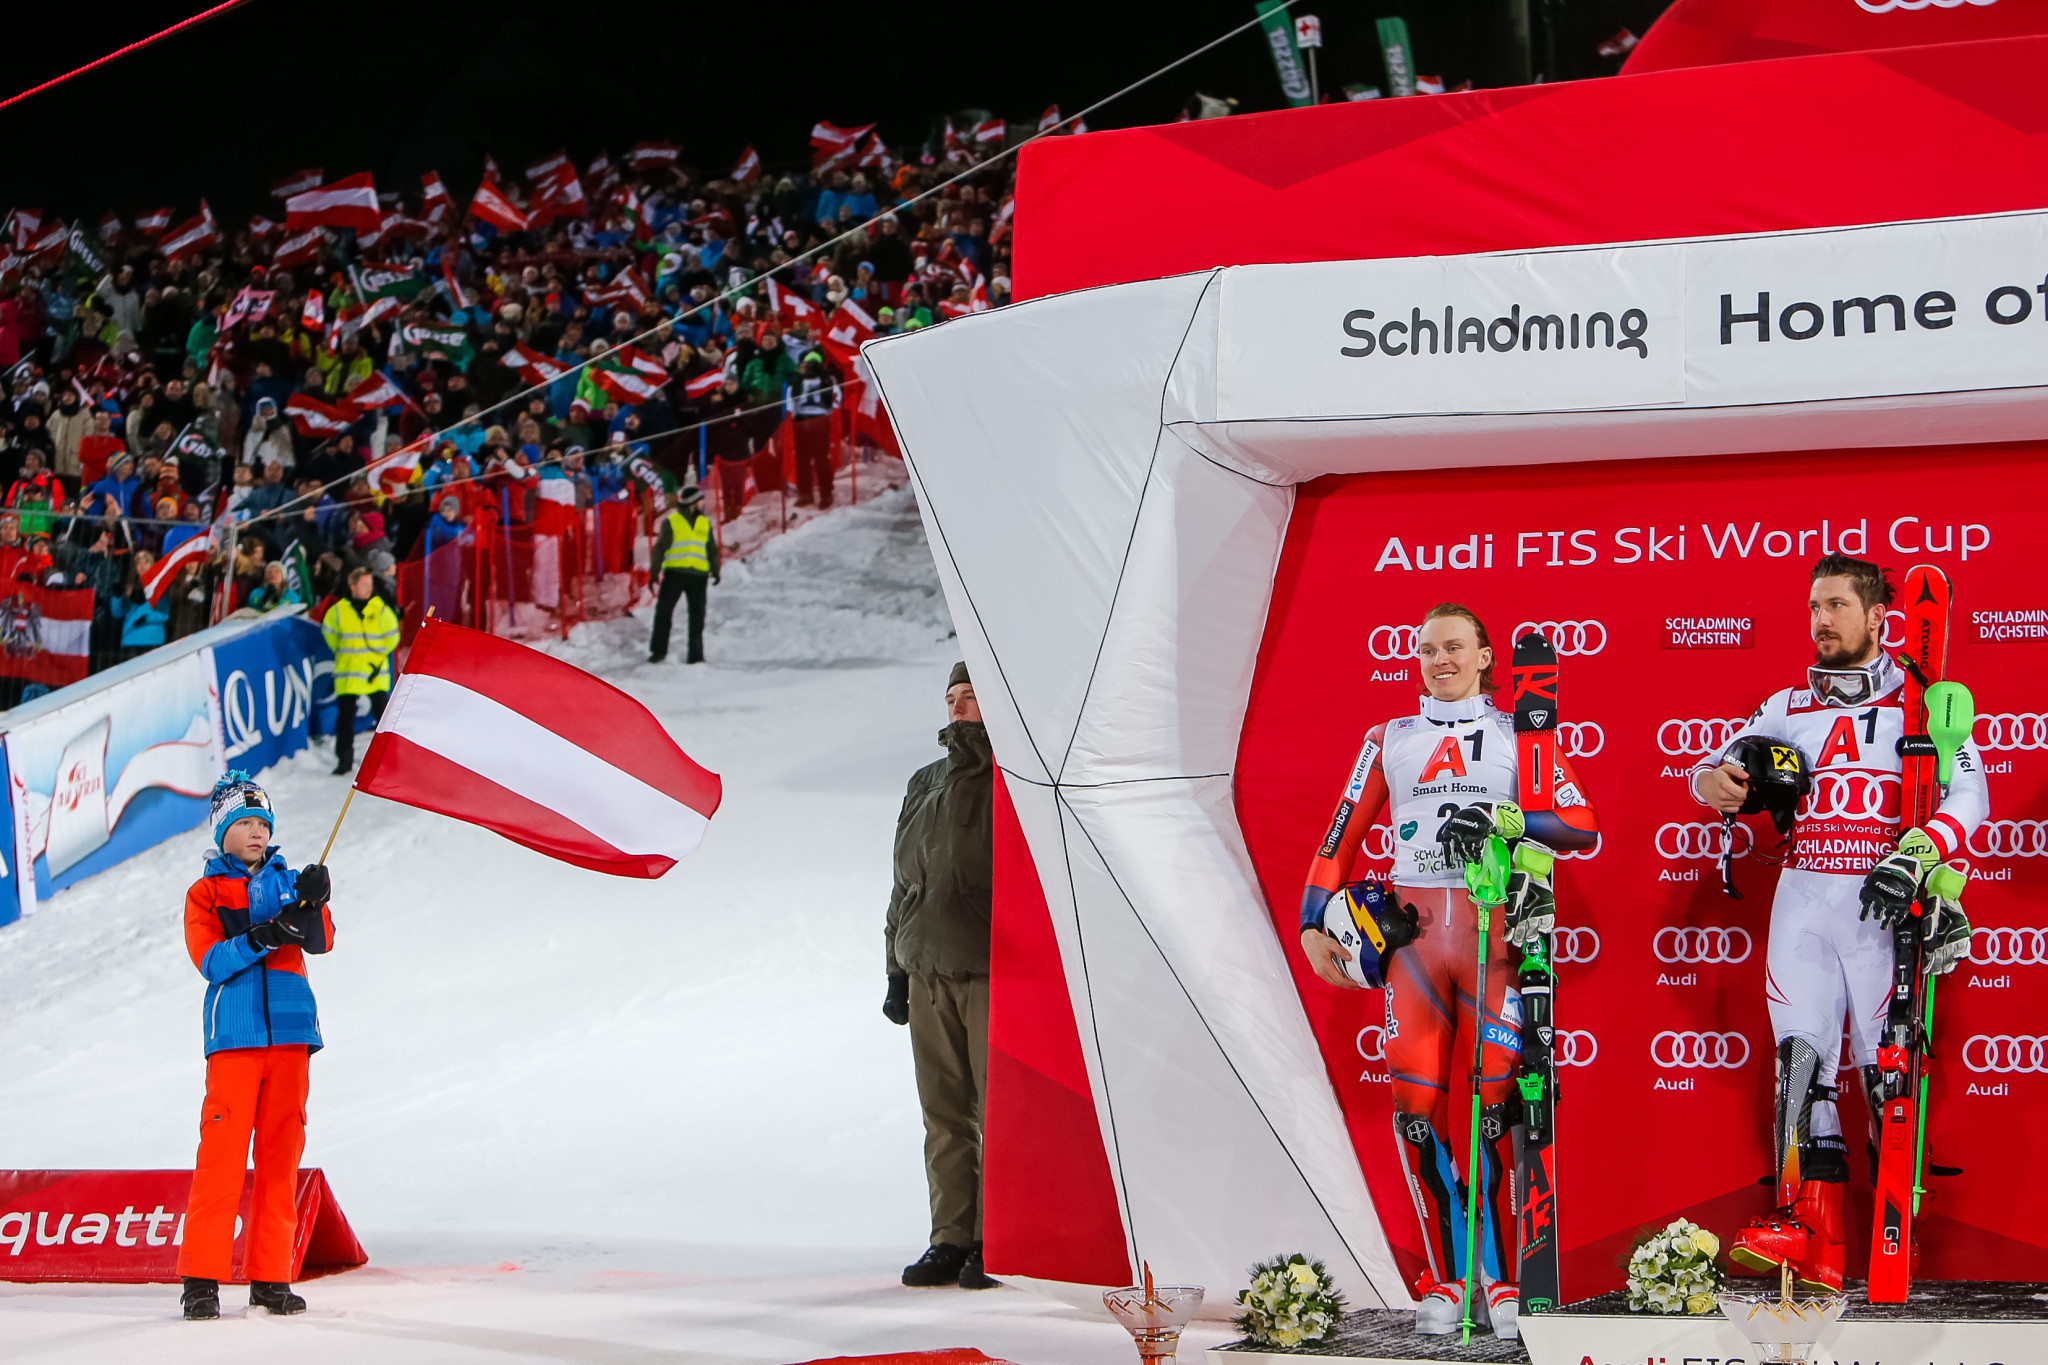 Schladming is already an established skiing resort on the World Cup circuit ©Getty Images